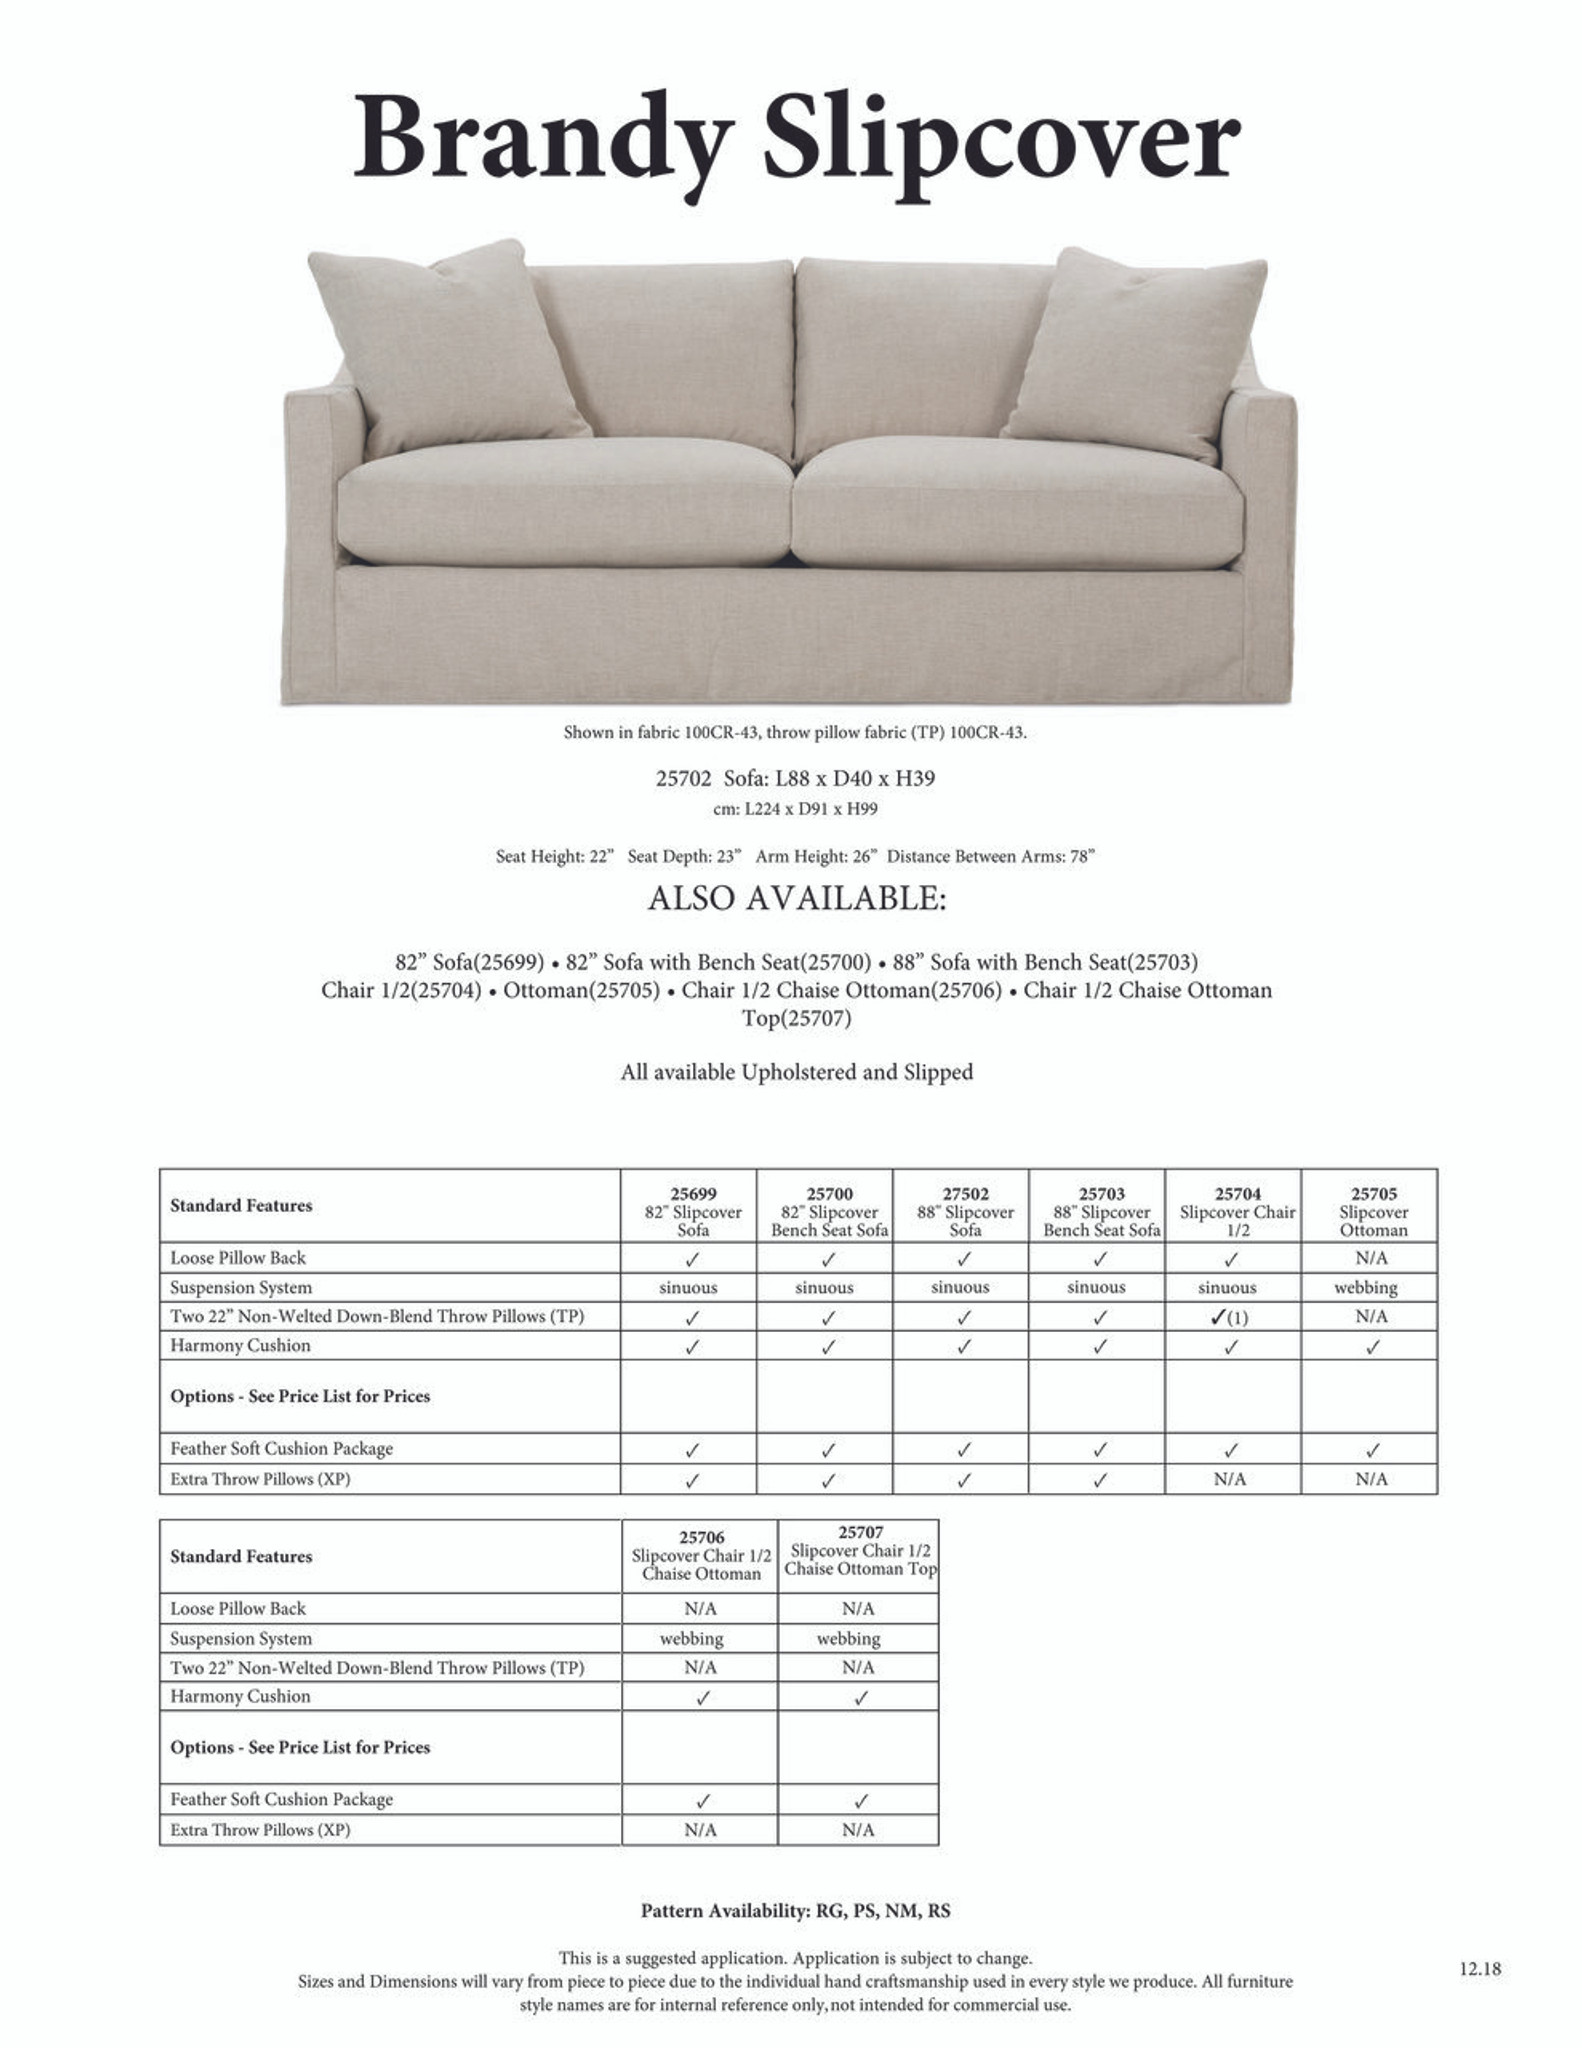 Incredible Sofa Roys Furniture Chicago Designer Furniture Pabps2019 Chair Design Images Pabps2019Com